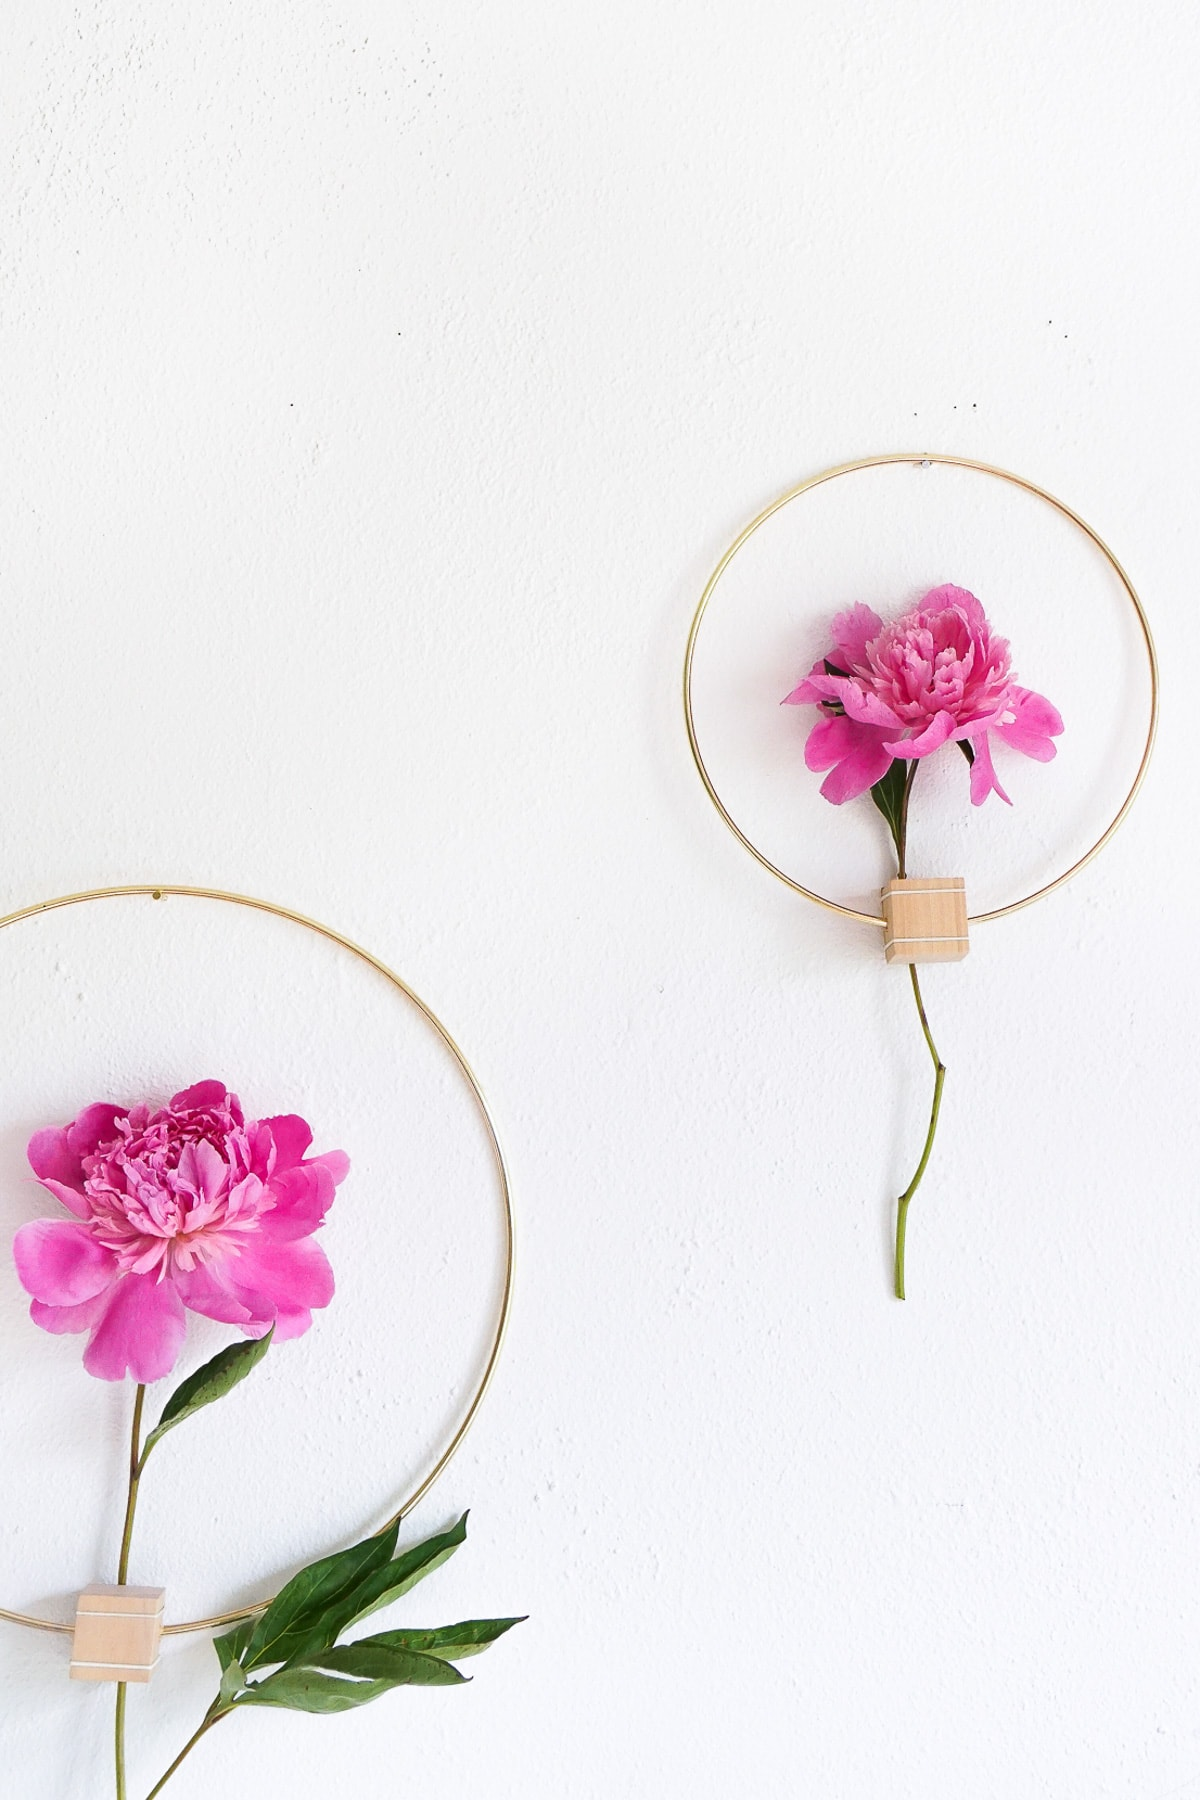 DIY Minimalist Flower Wall Hang (Erin)-12 - Sugar & Cloth